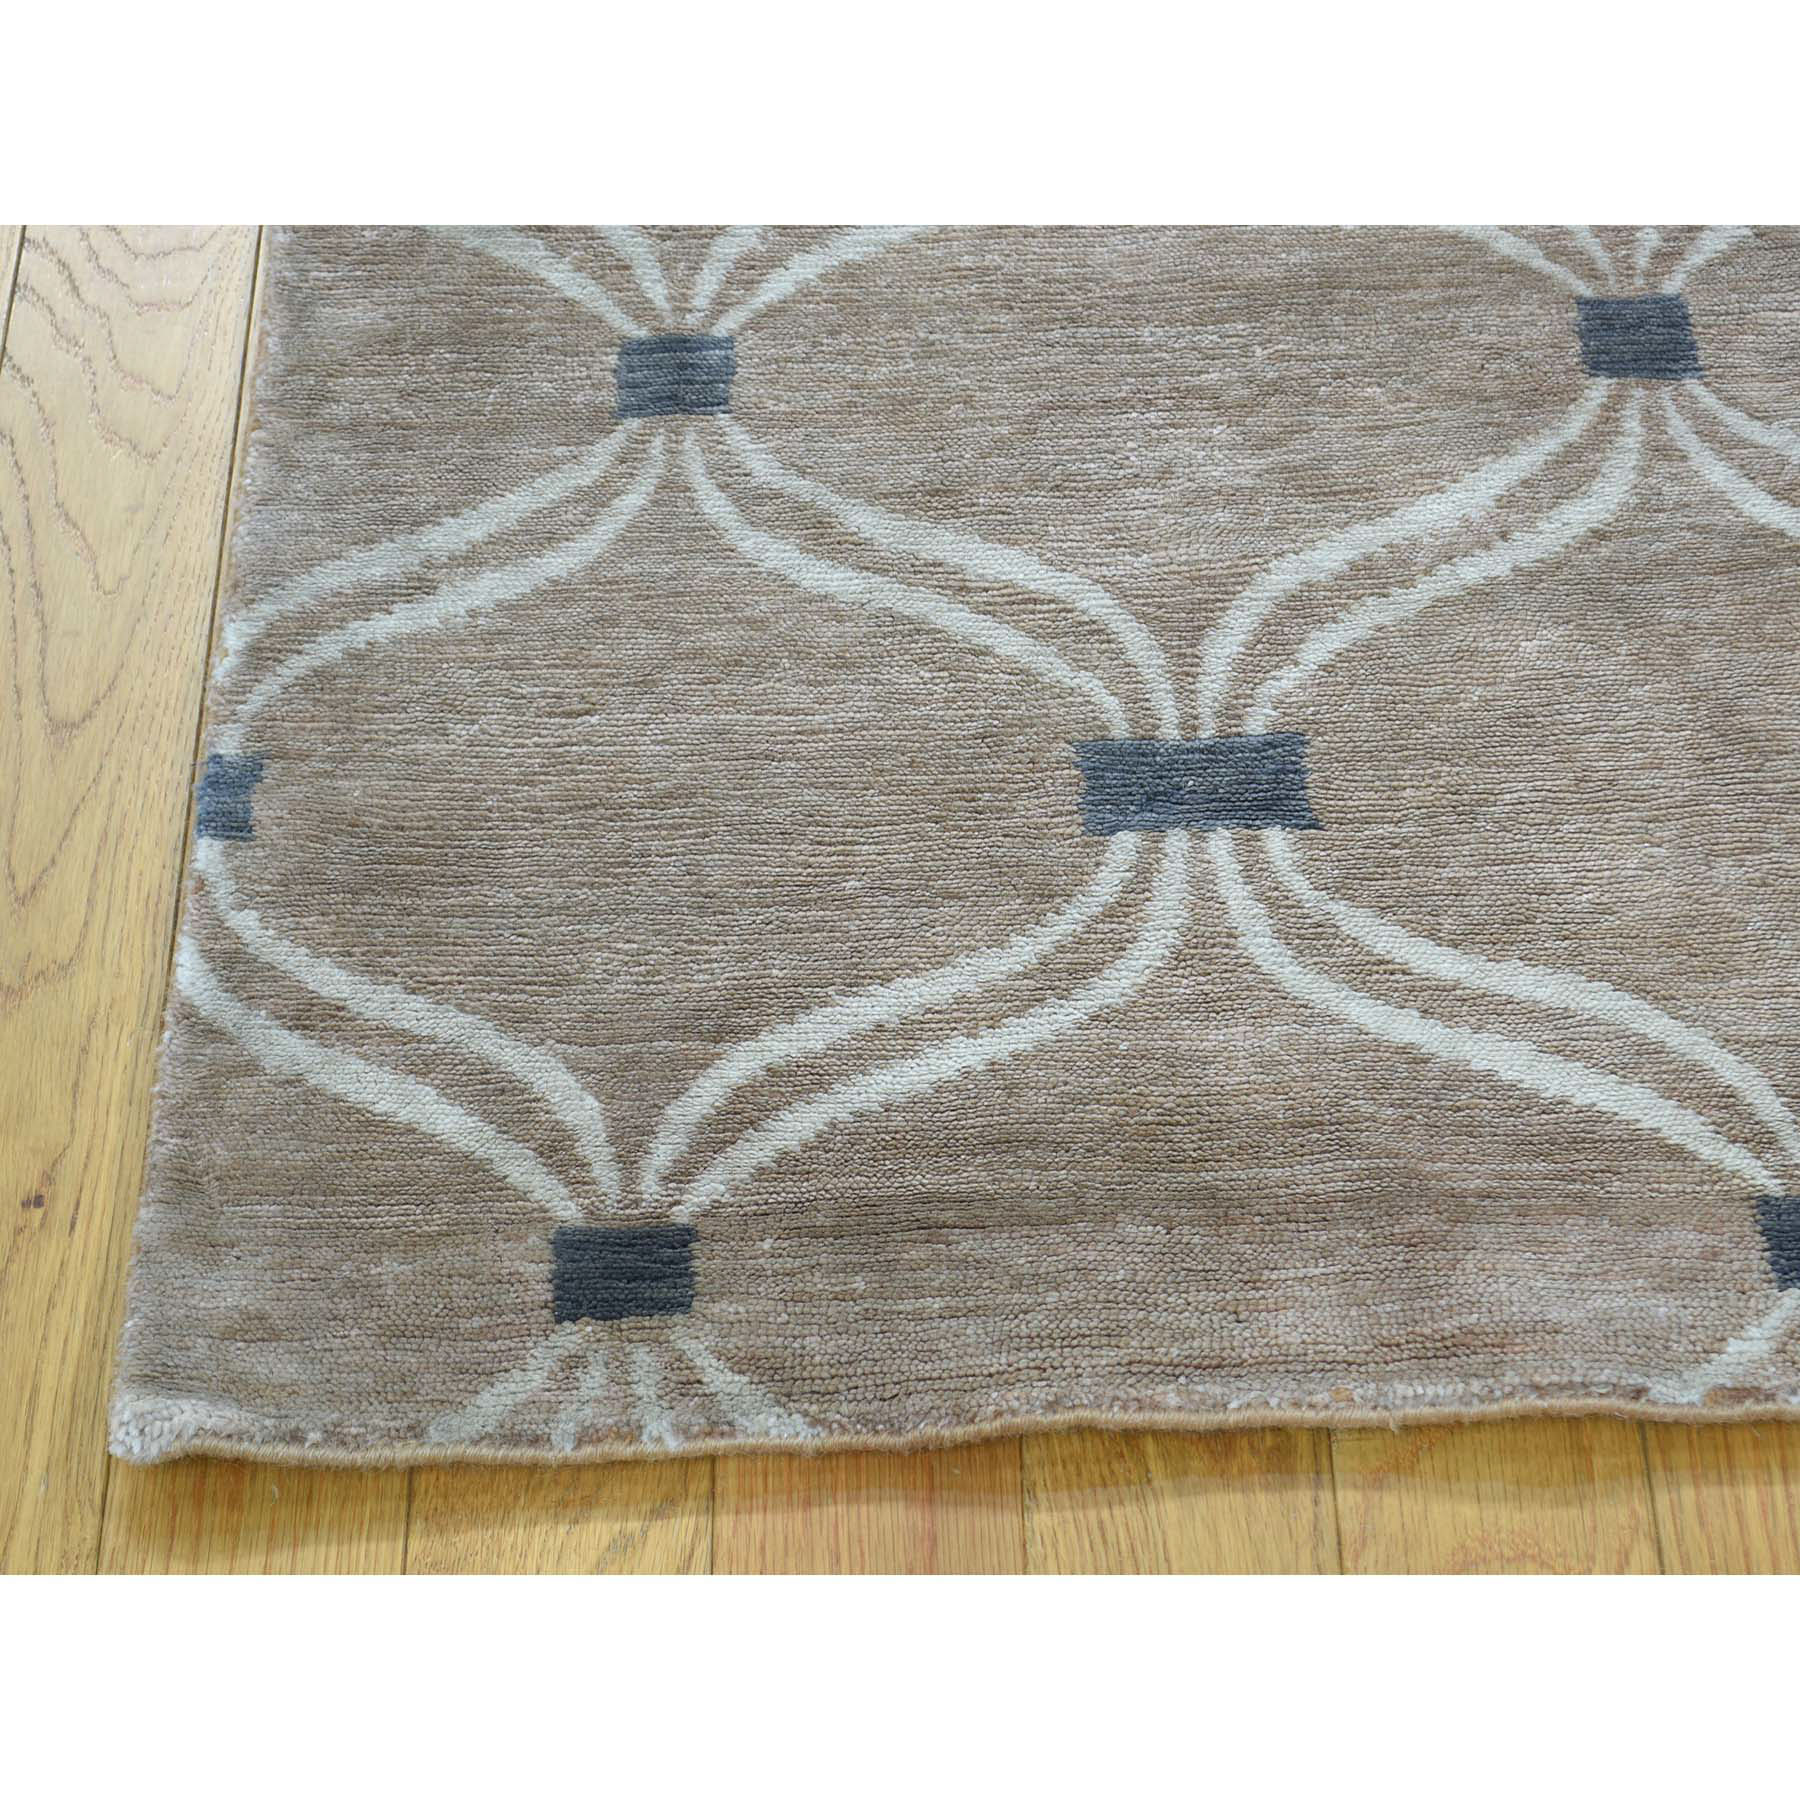 2-x3- Hand-Knotted Wool And Silk Modern Design Taupe Oriental Rug